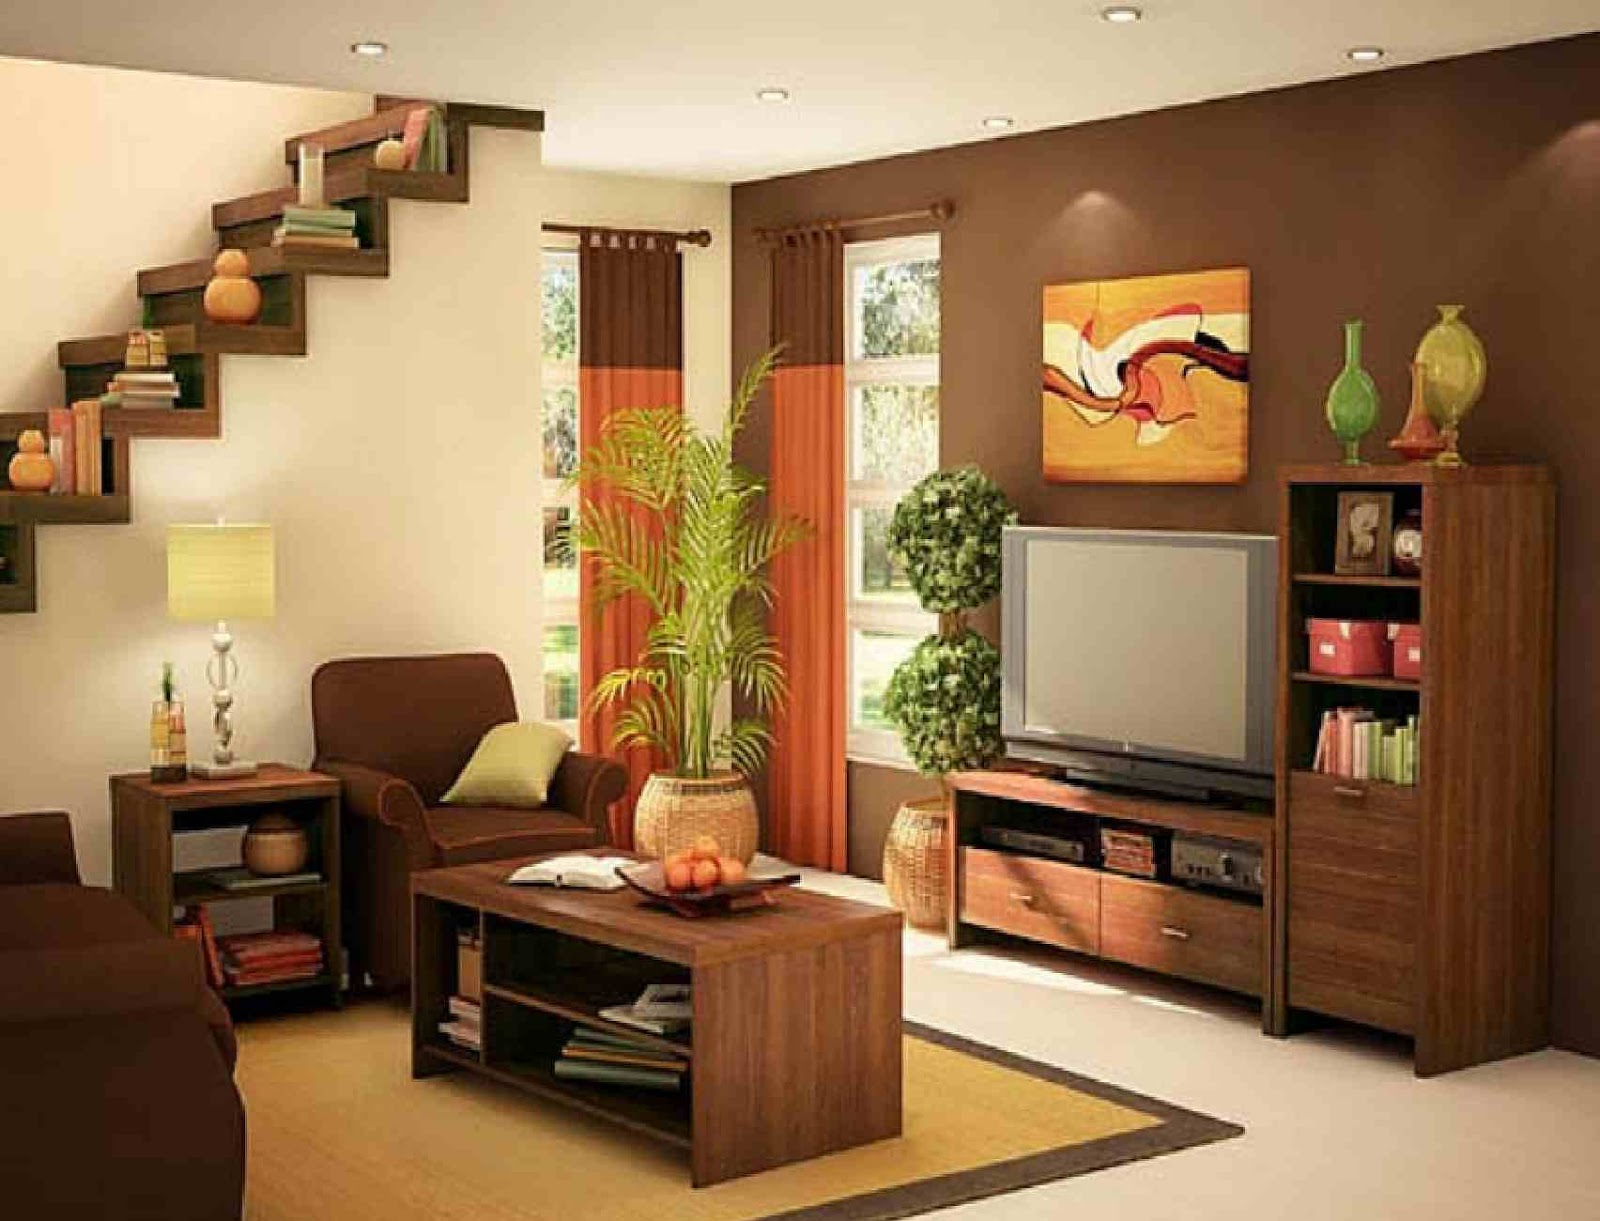 Home interior designs simple living room designs for Simple interior design ideas for living room